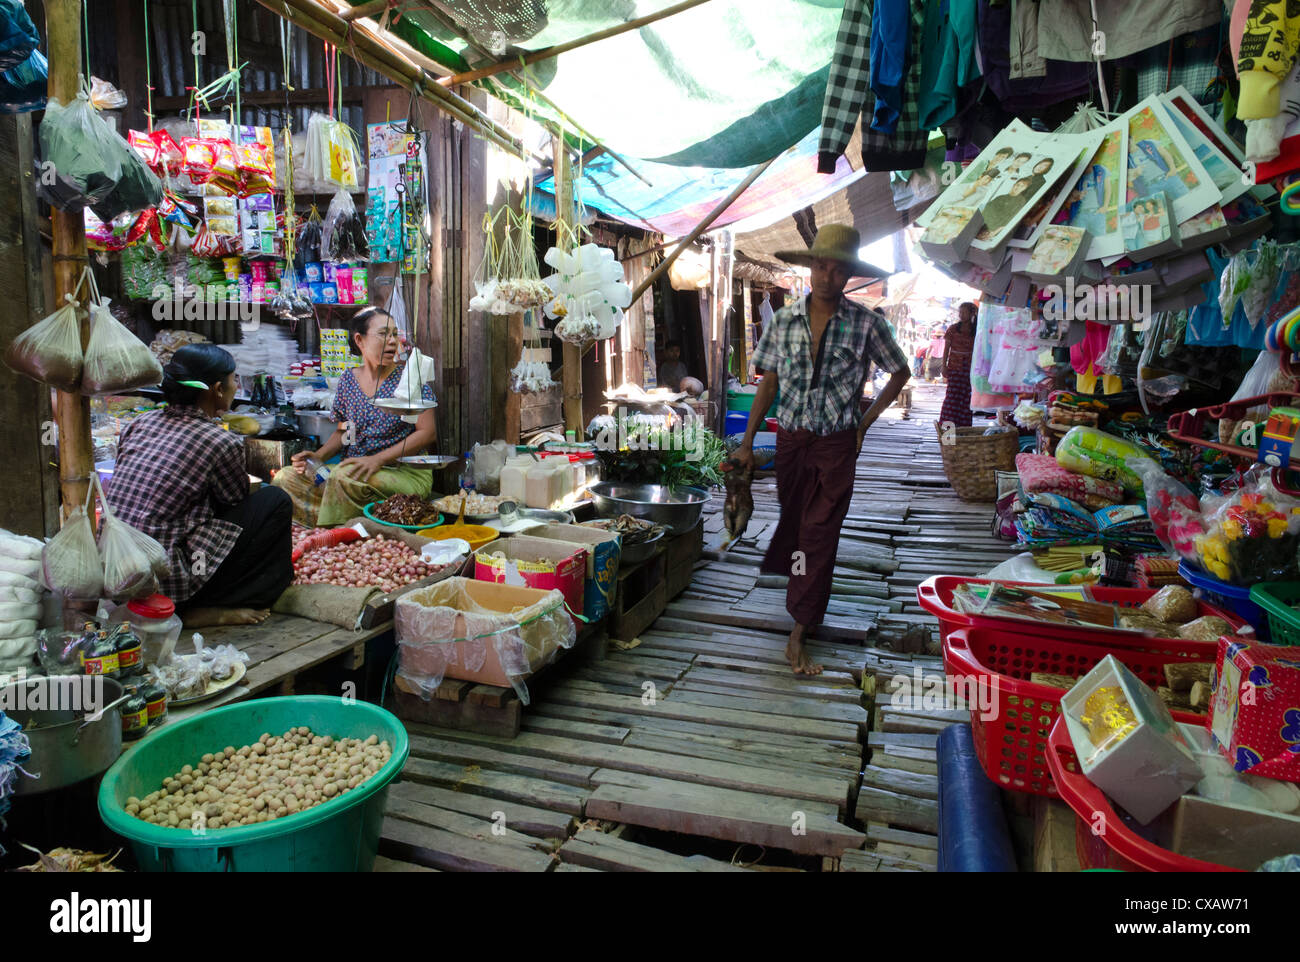 Khan Beth daily market on the waterway, Irrawaddy delta, Myanmar (Burma), Asia - Stock Image